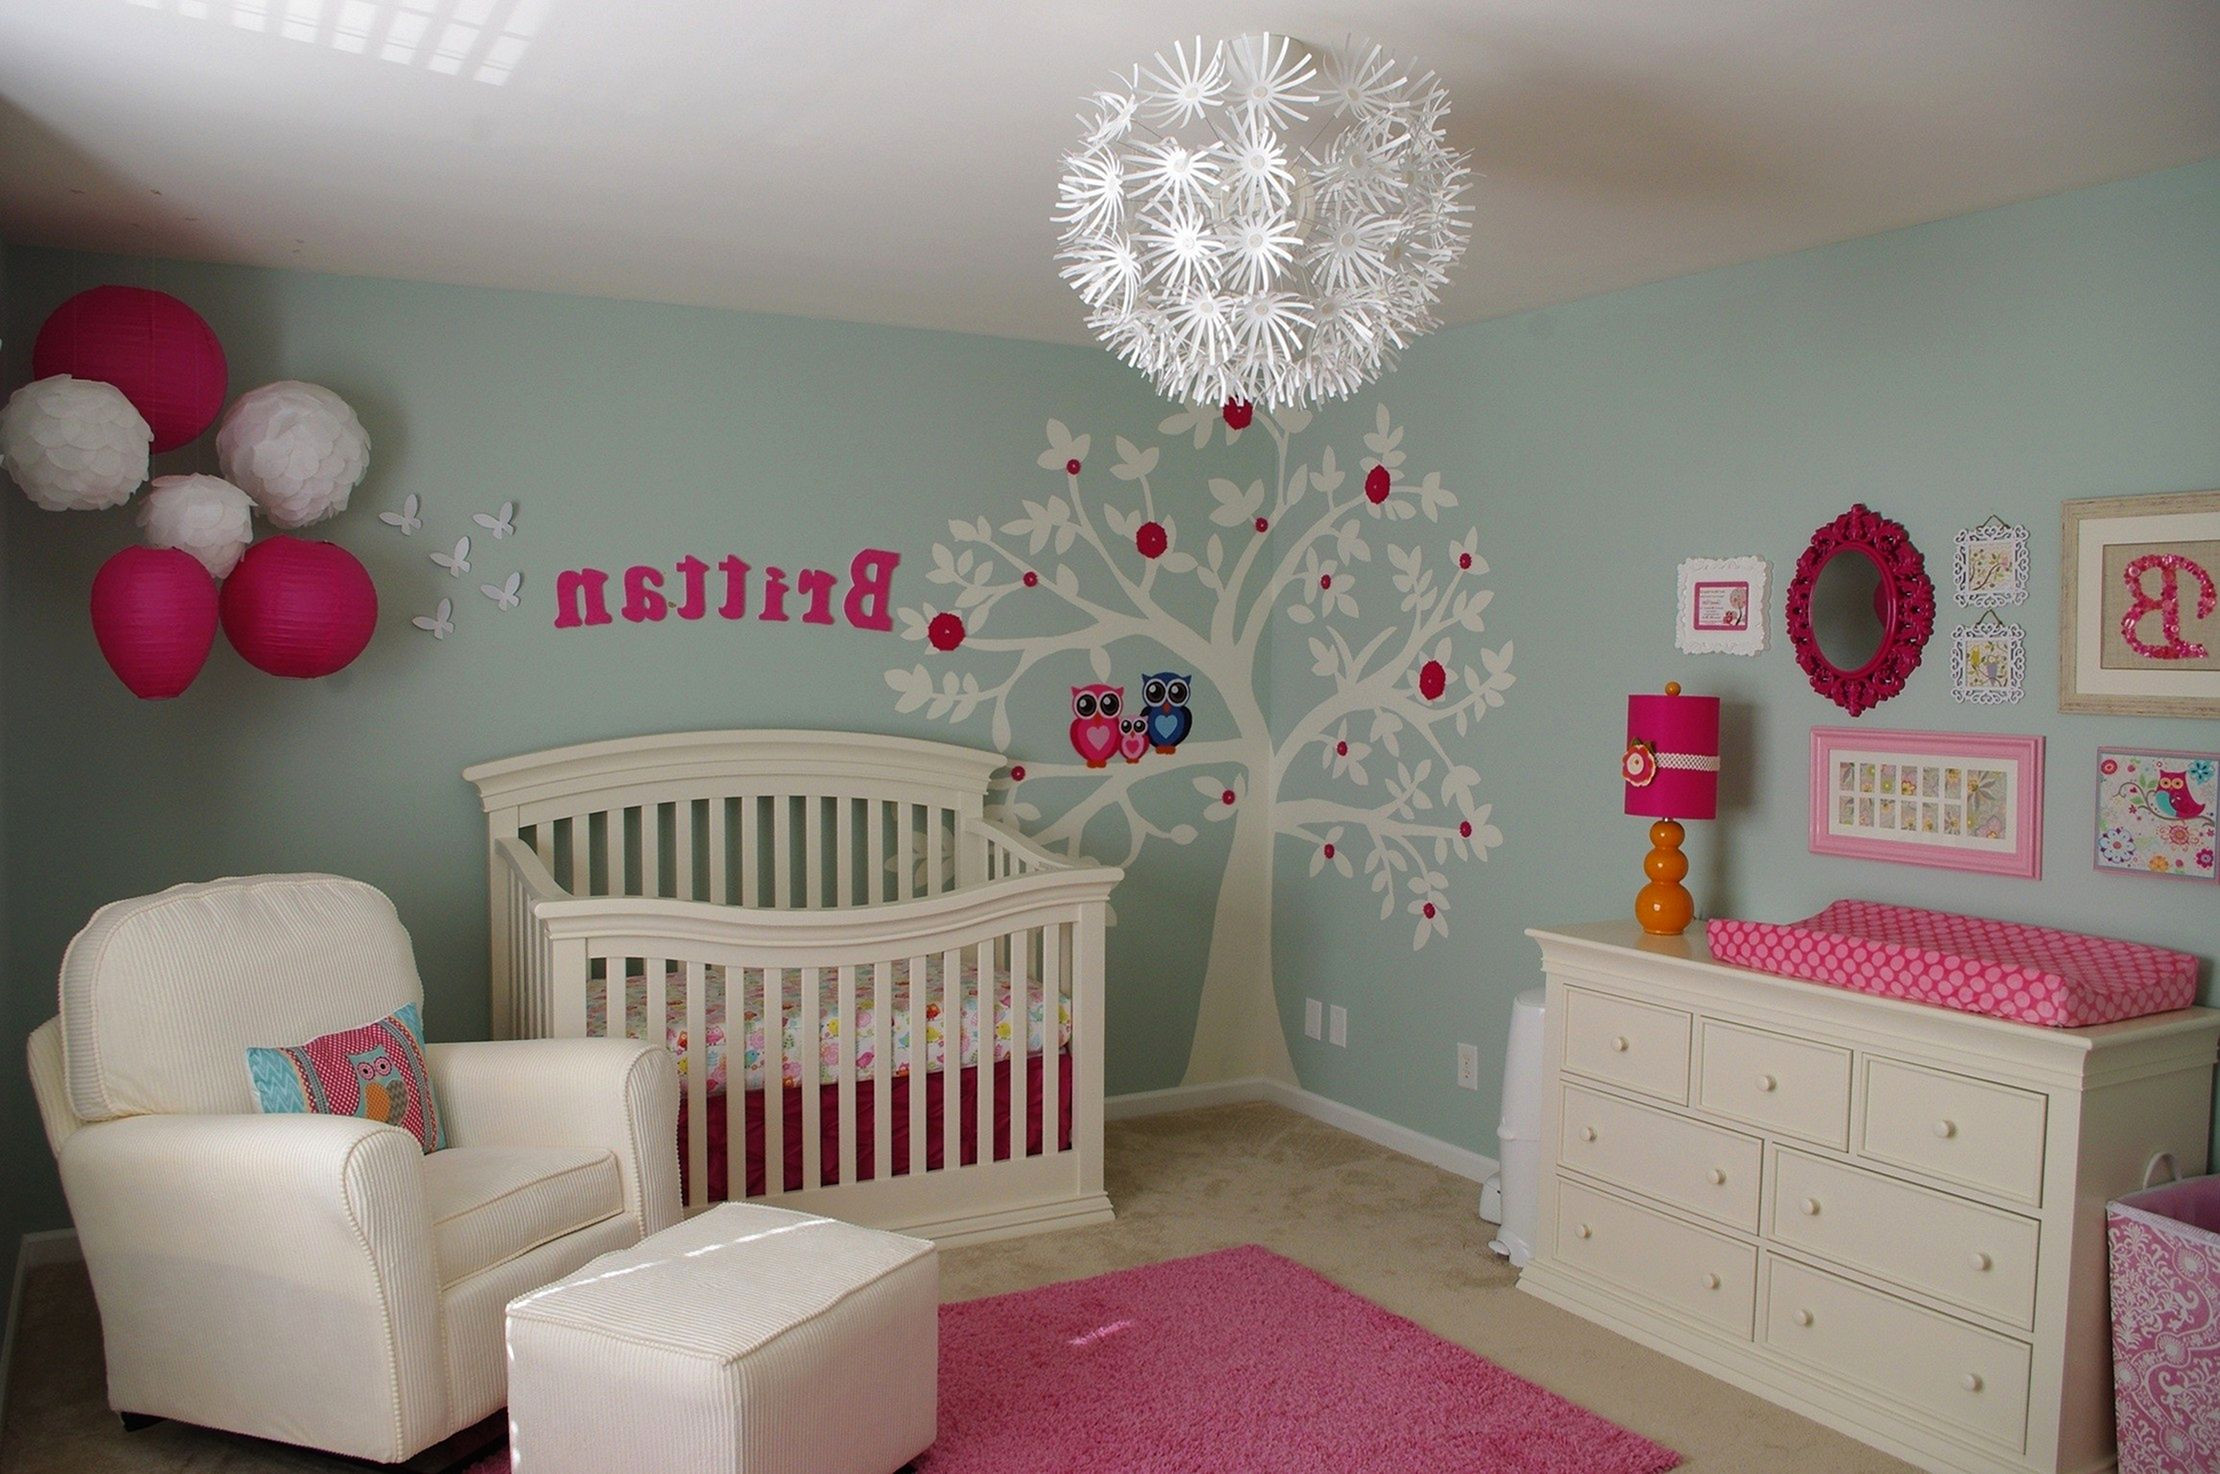 DIY Baby Room Decorations  DIY Baby Room Decor Ideas For Girls DIY Baby Room Decor